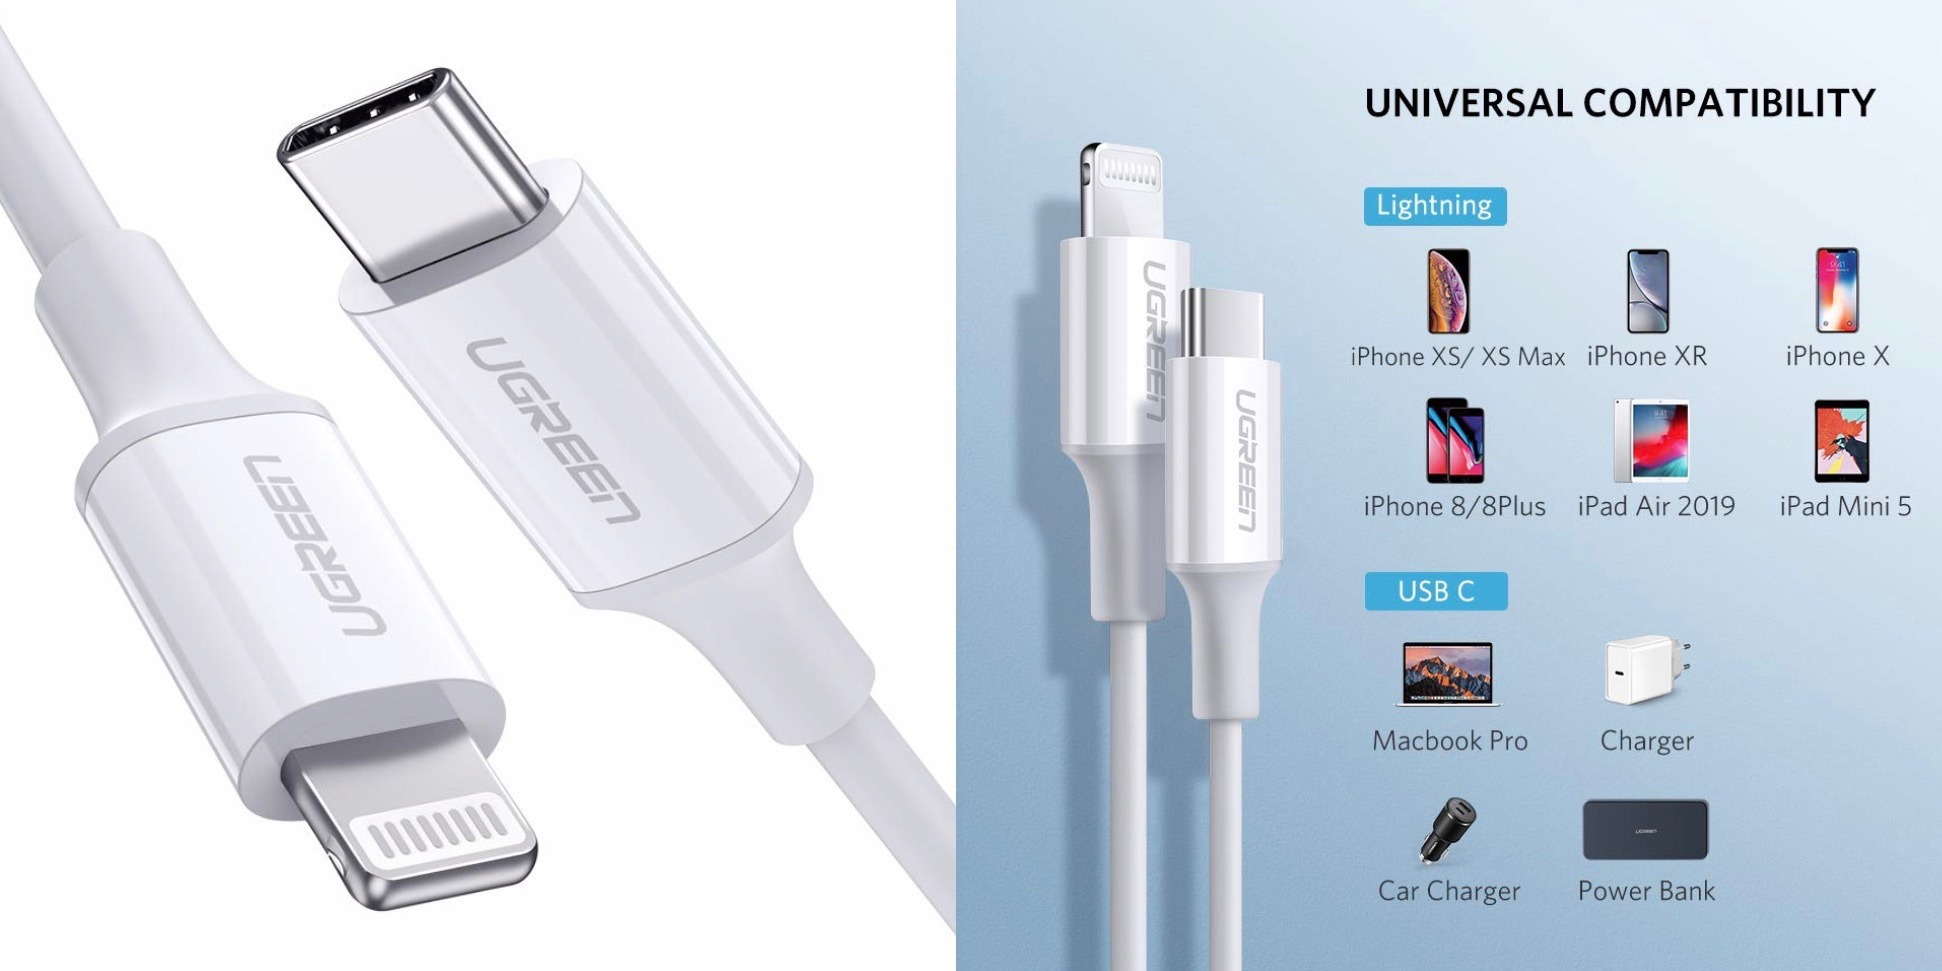 Ugreen's new MFi USB-C to Lightning cable undercuts Belkin and Anker at $13